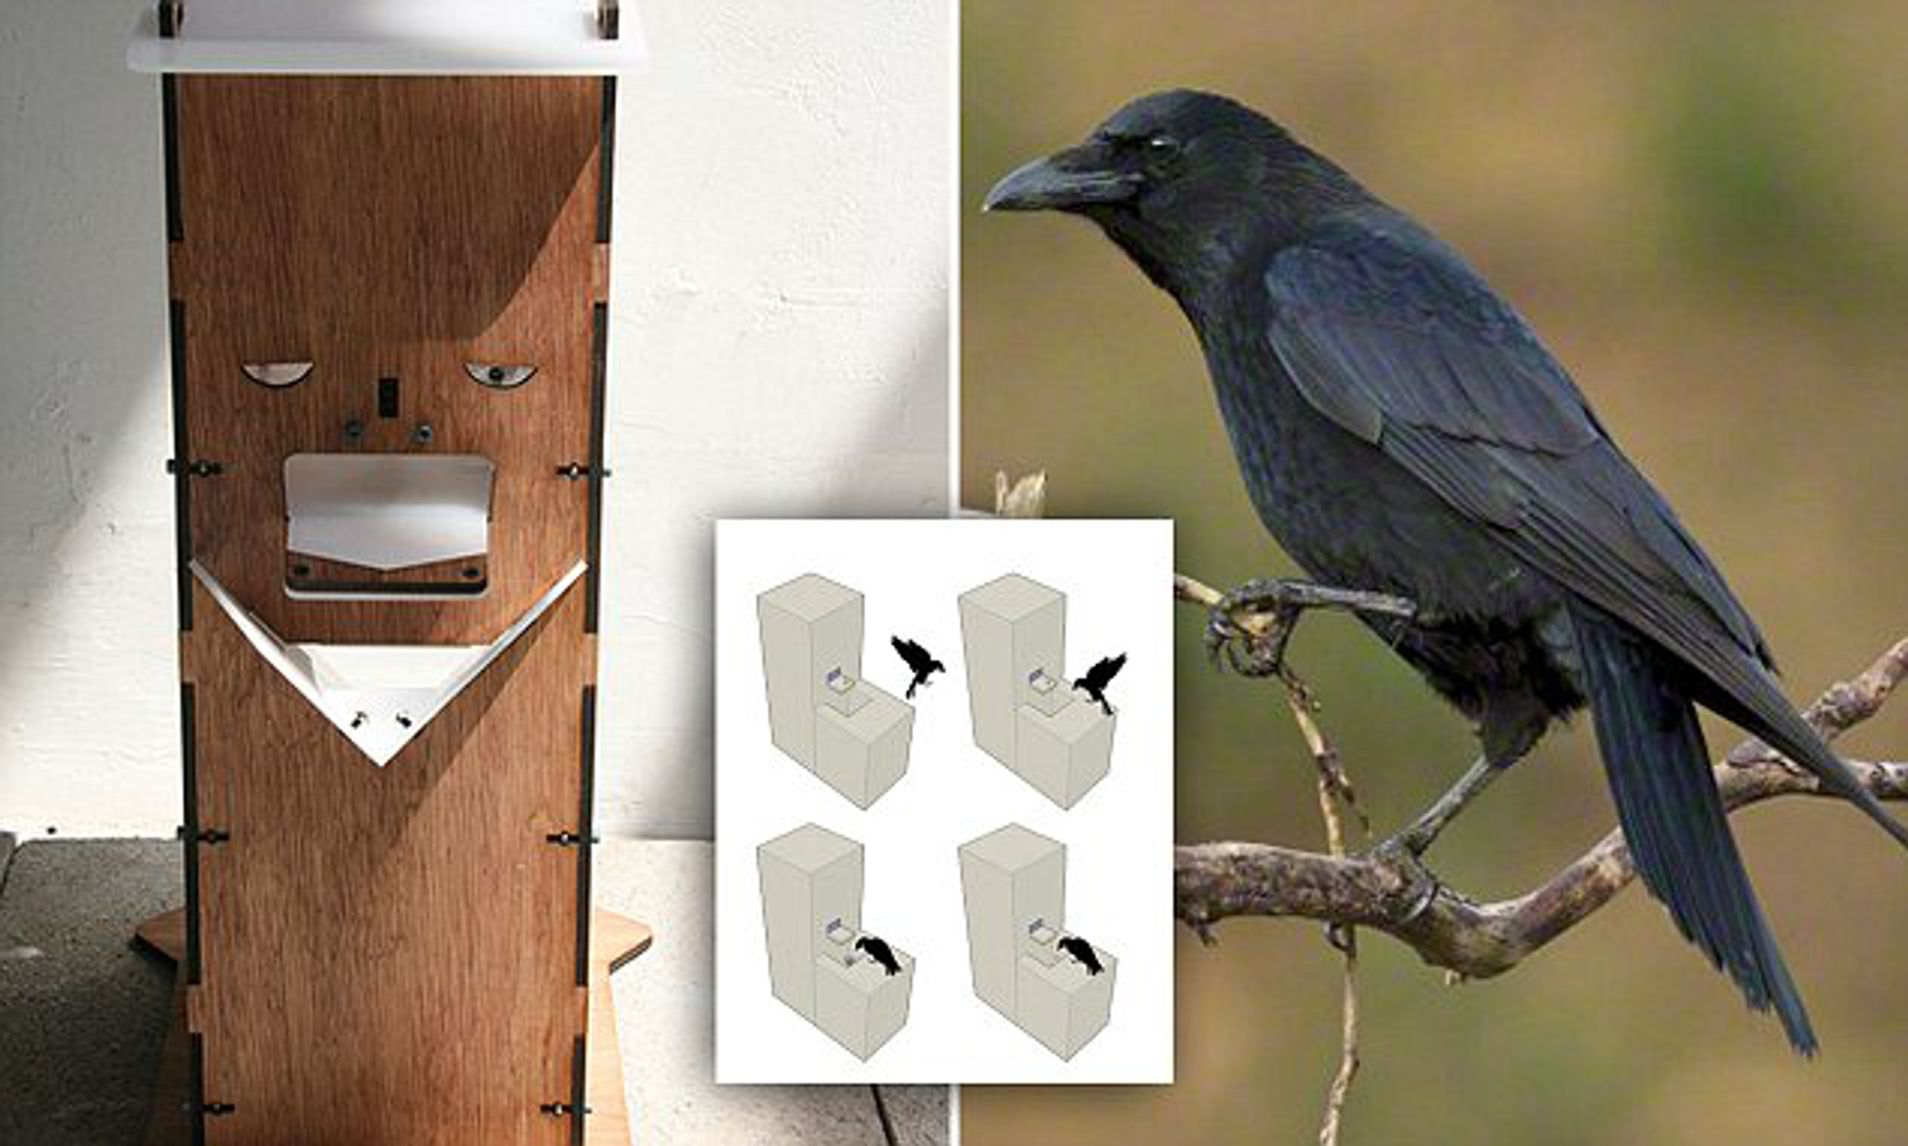 The Crow Box feeder trains birds to PAY for their food | Daily ...